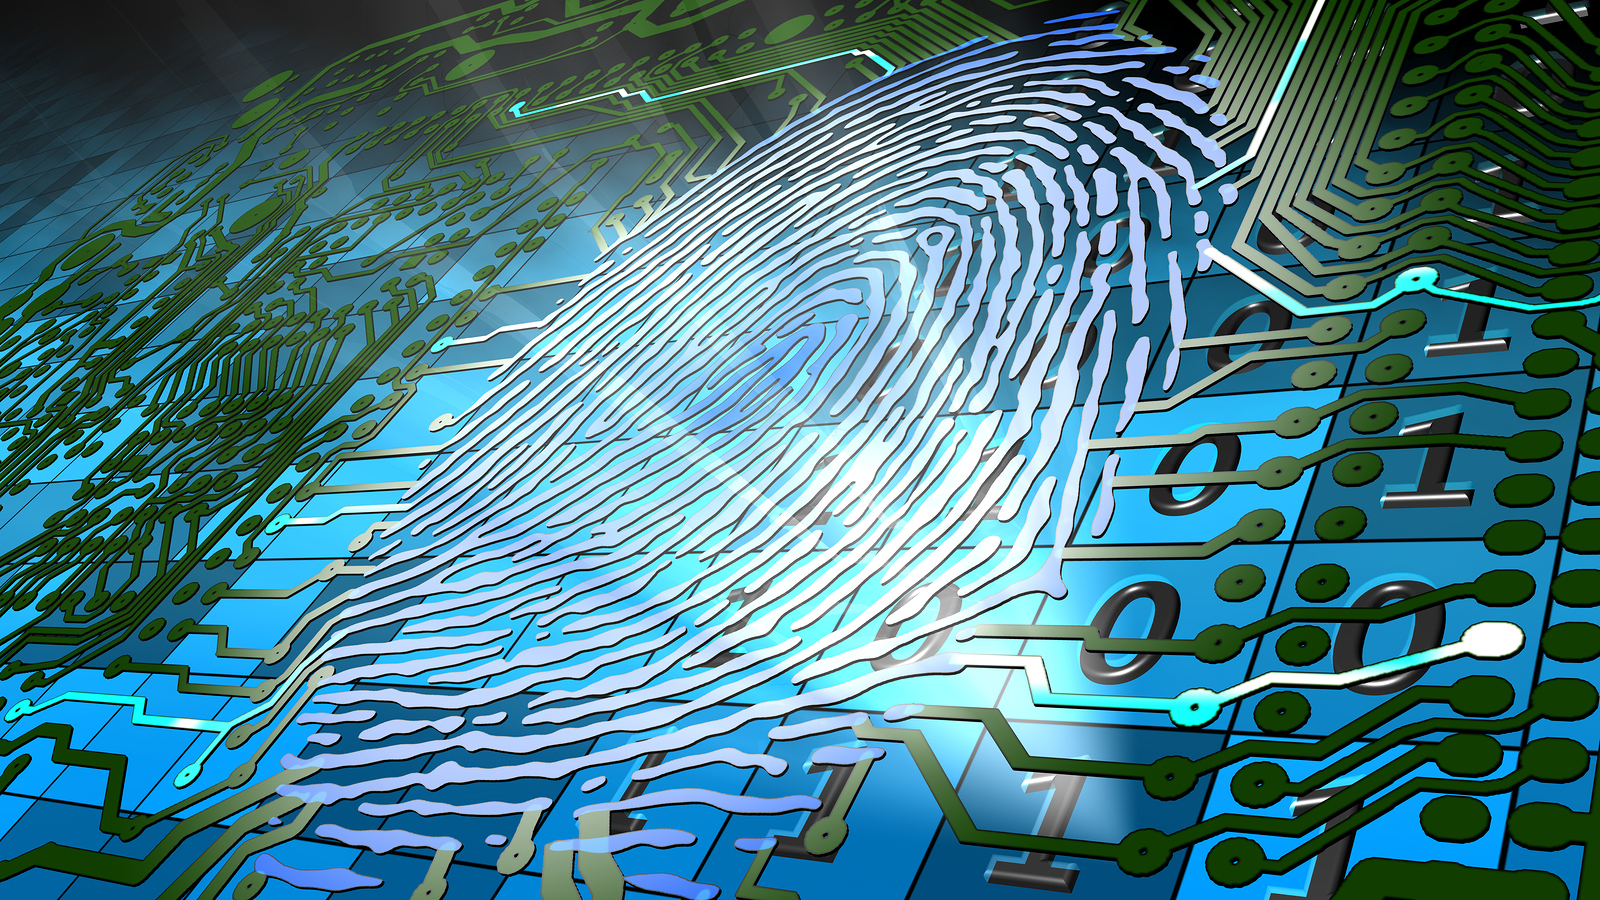 bigstock_biometric_fingerprint_based_id_24456917.jpg